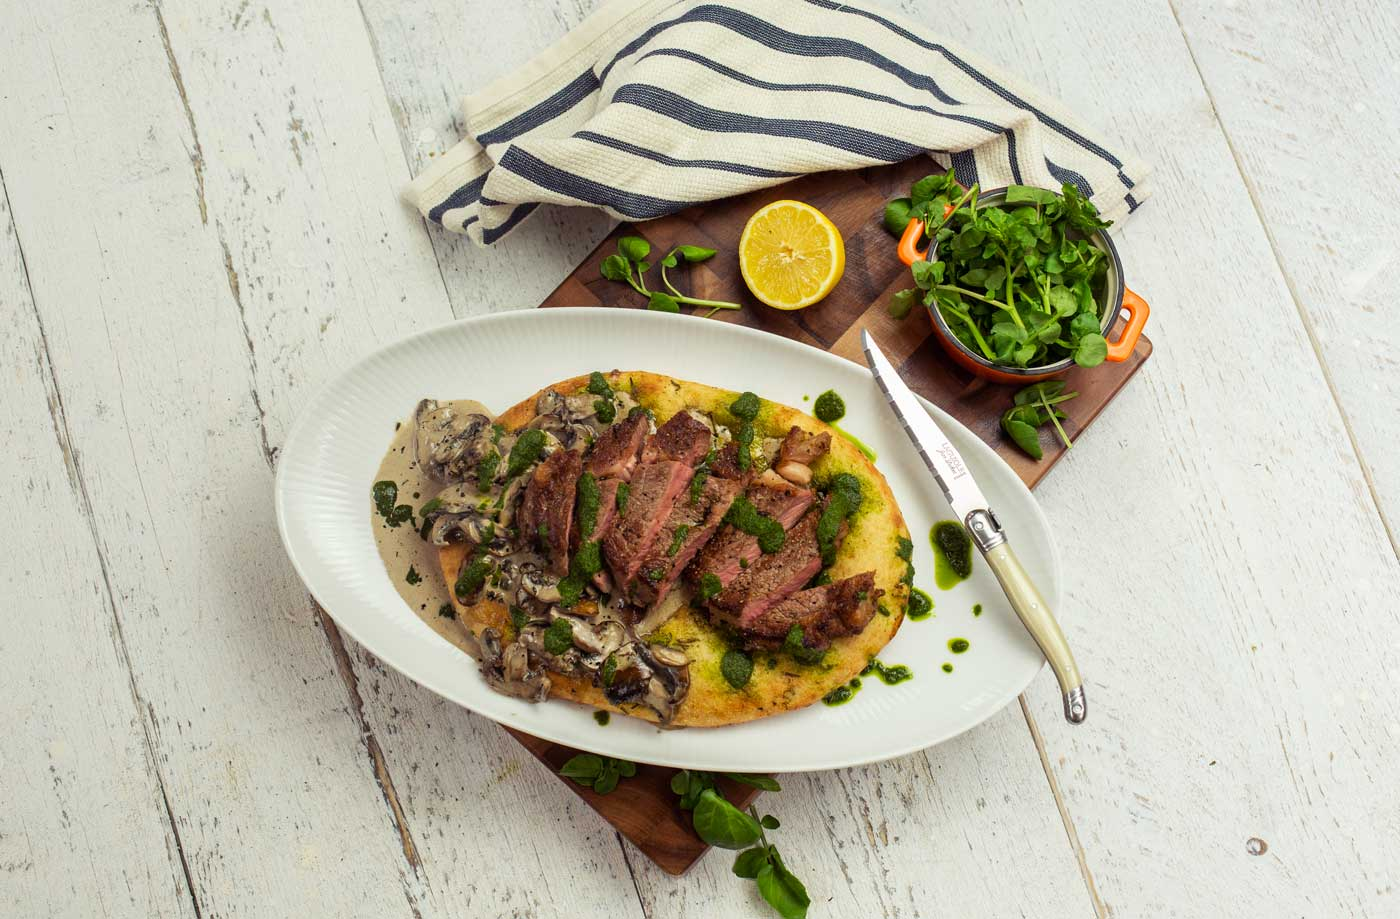 Seared steak flatbread sharer recipe